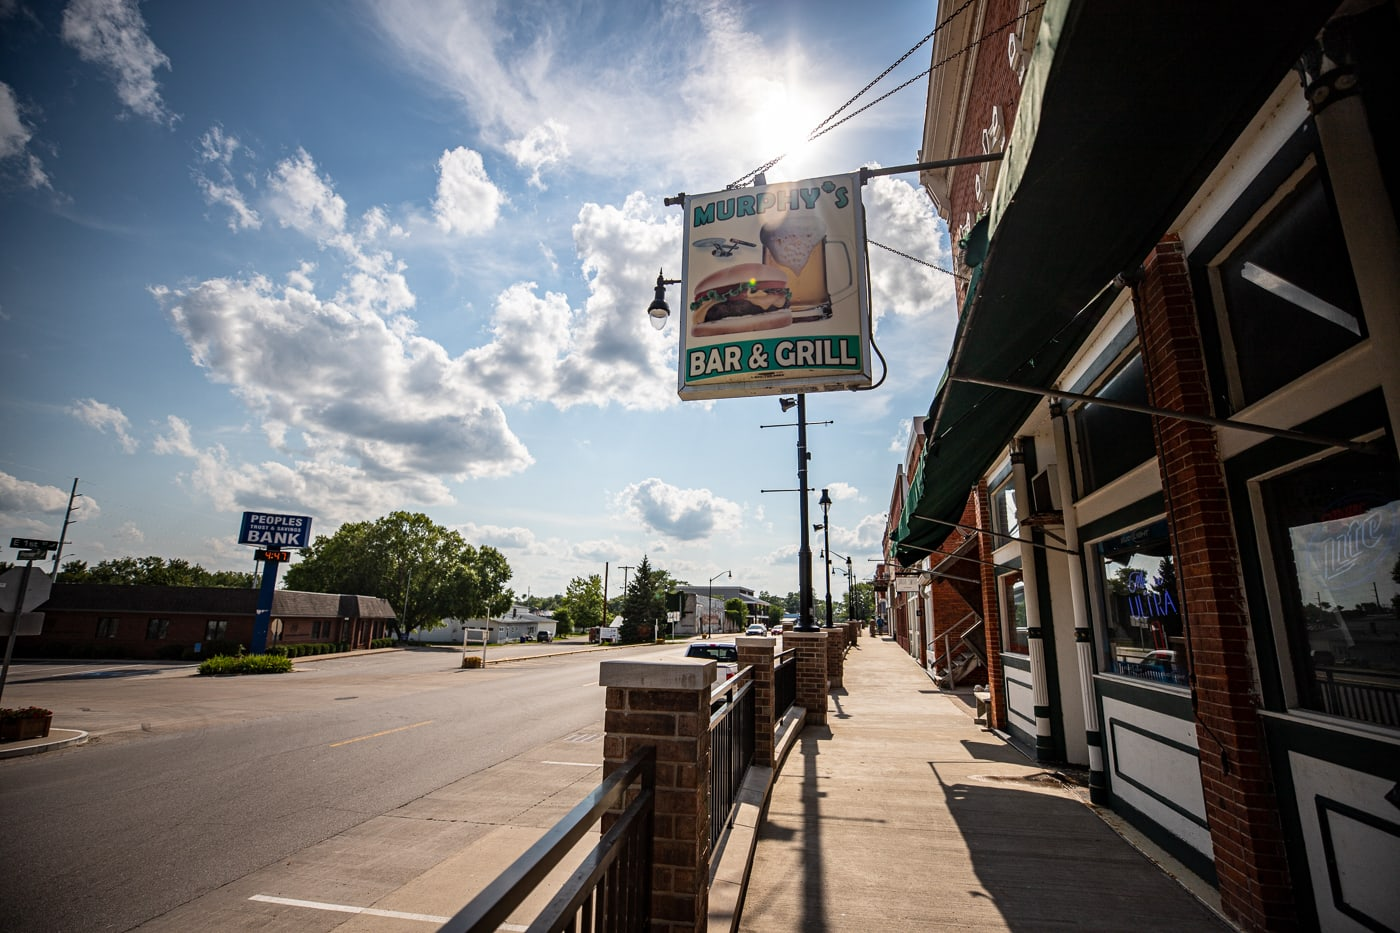 Murphy's Bar and Grill in Riverside, Iowa